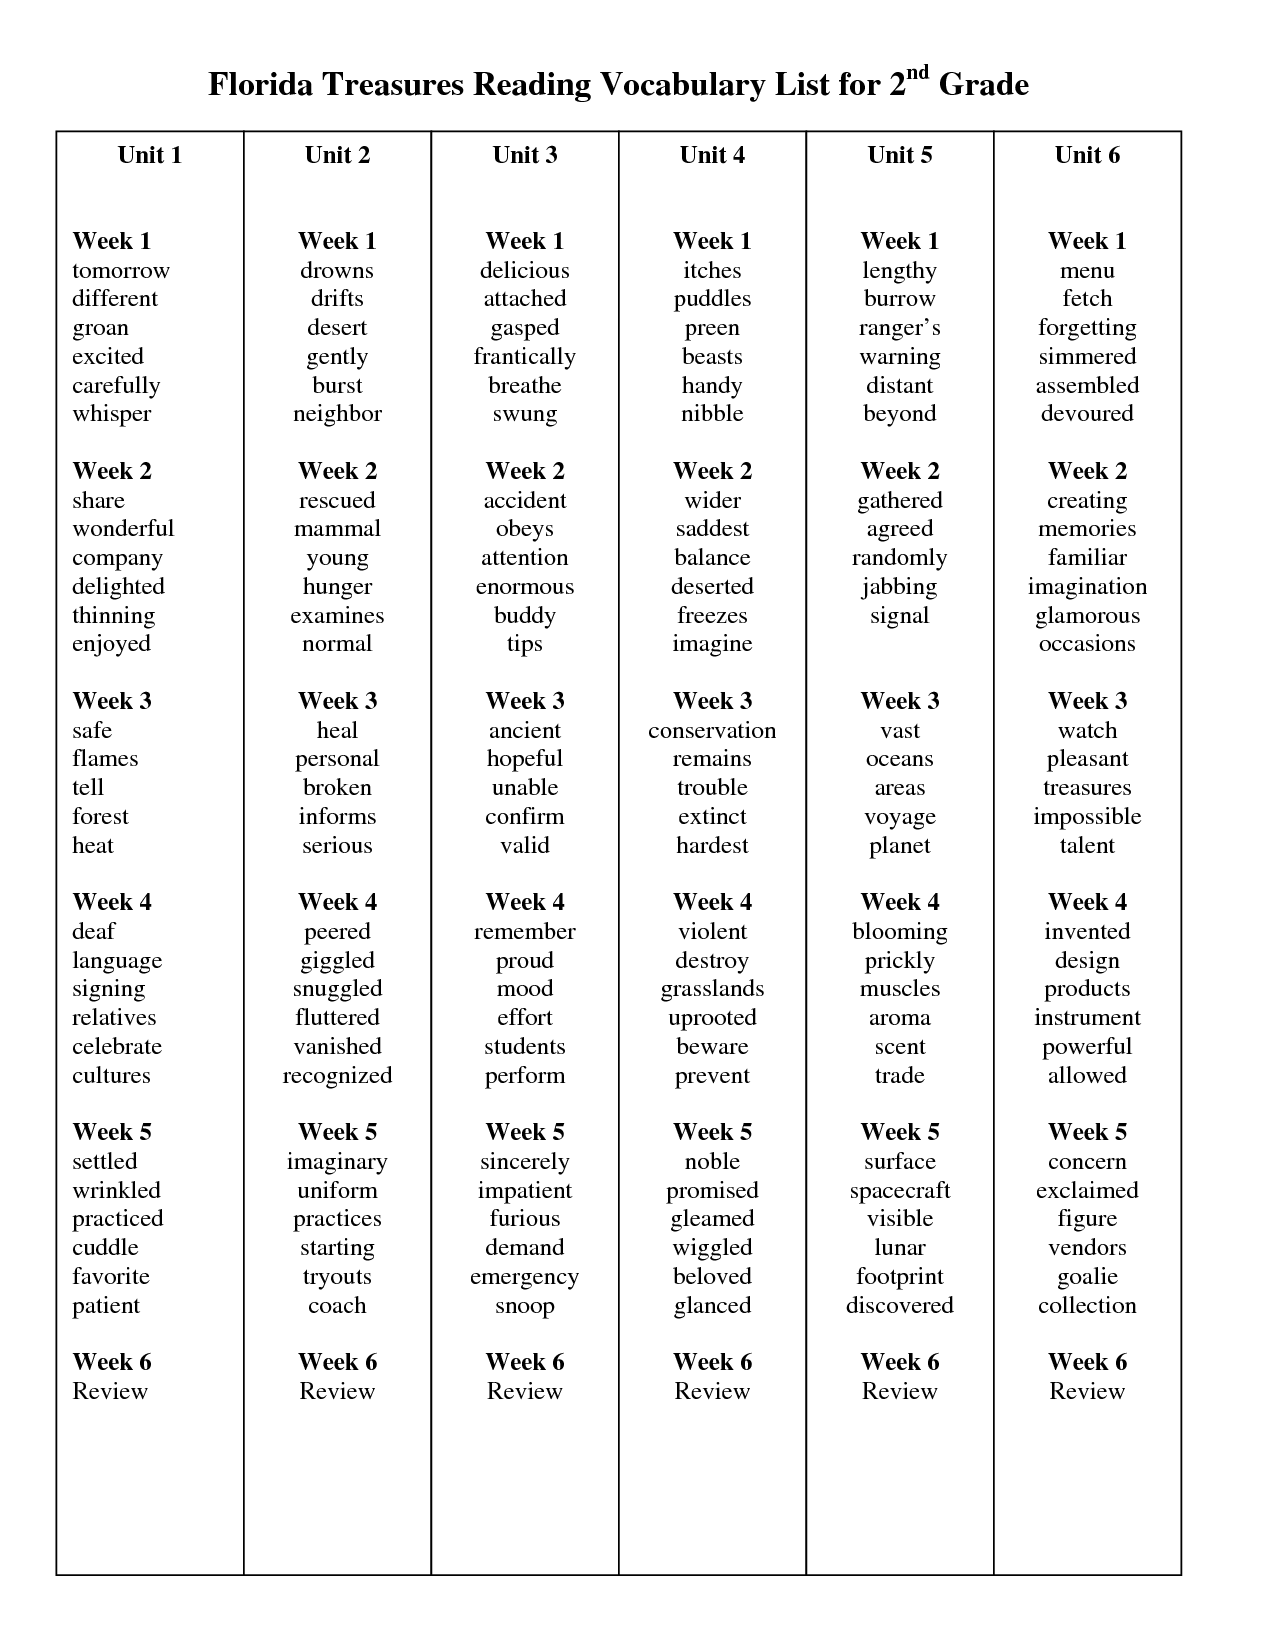 List Of Core Words Second Grade Florida Treasures Reading Vocabulary List For 2 Grade